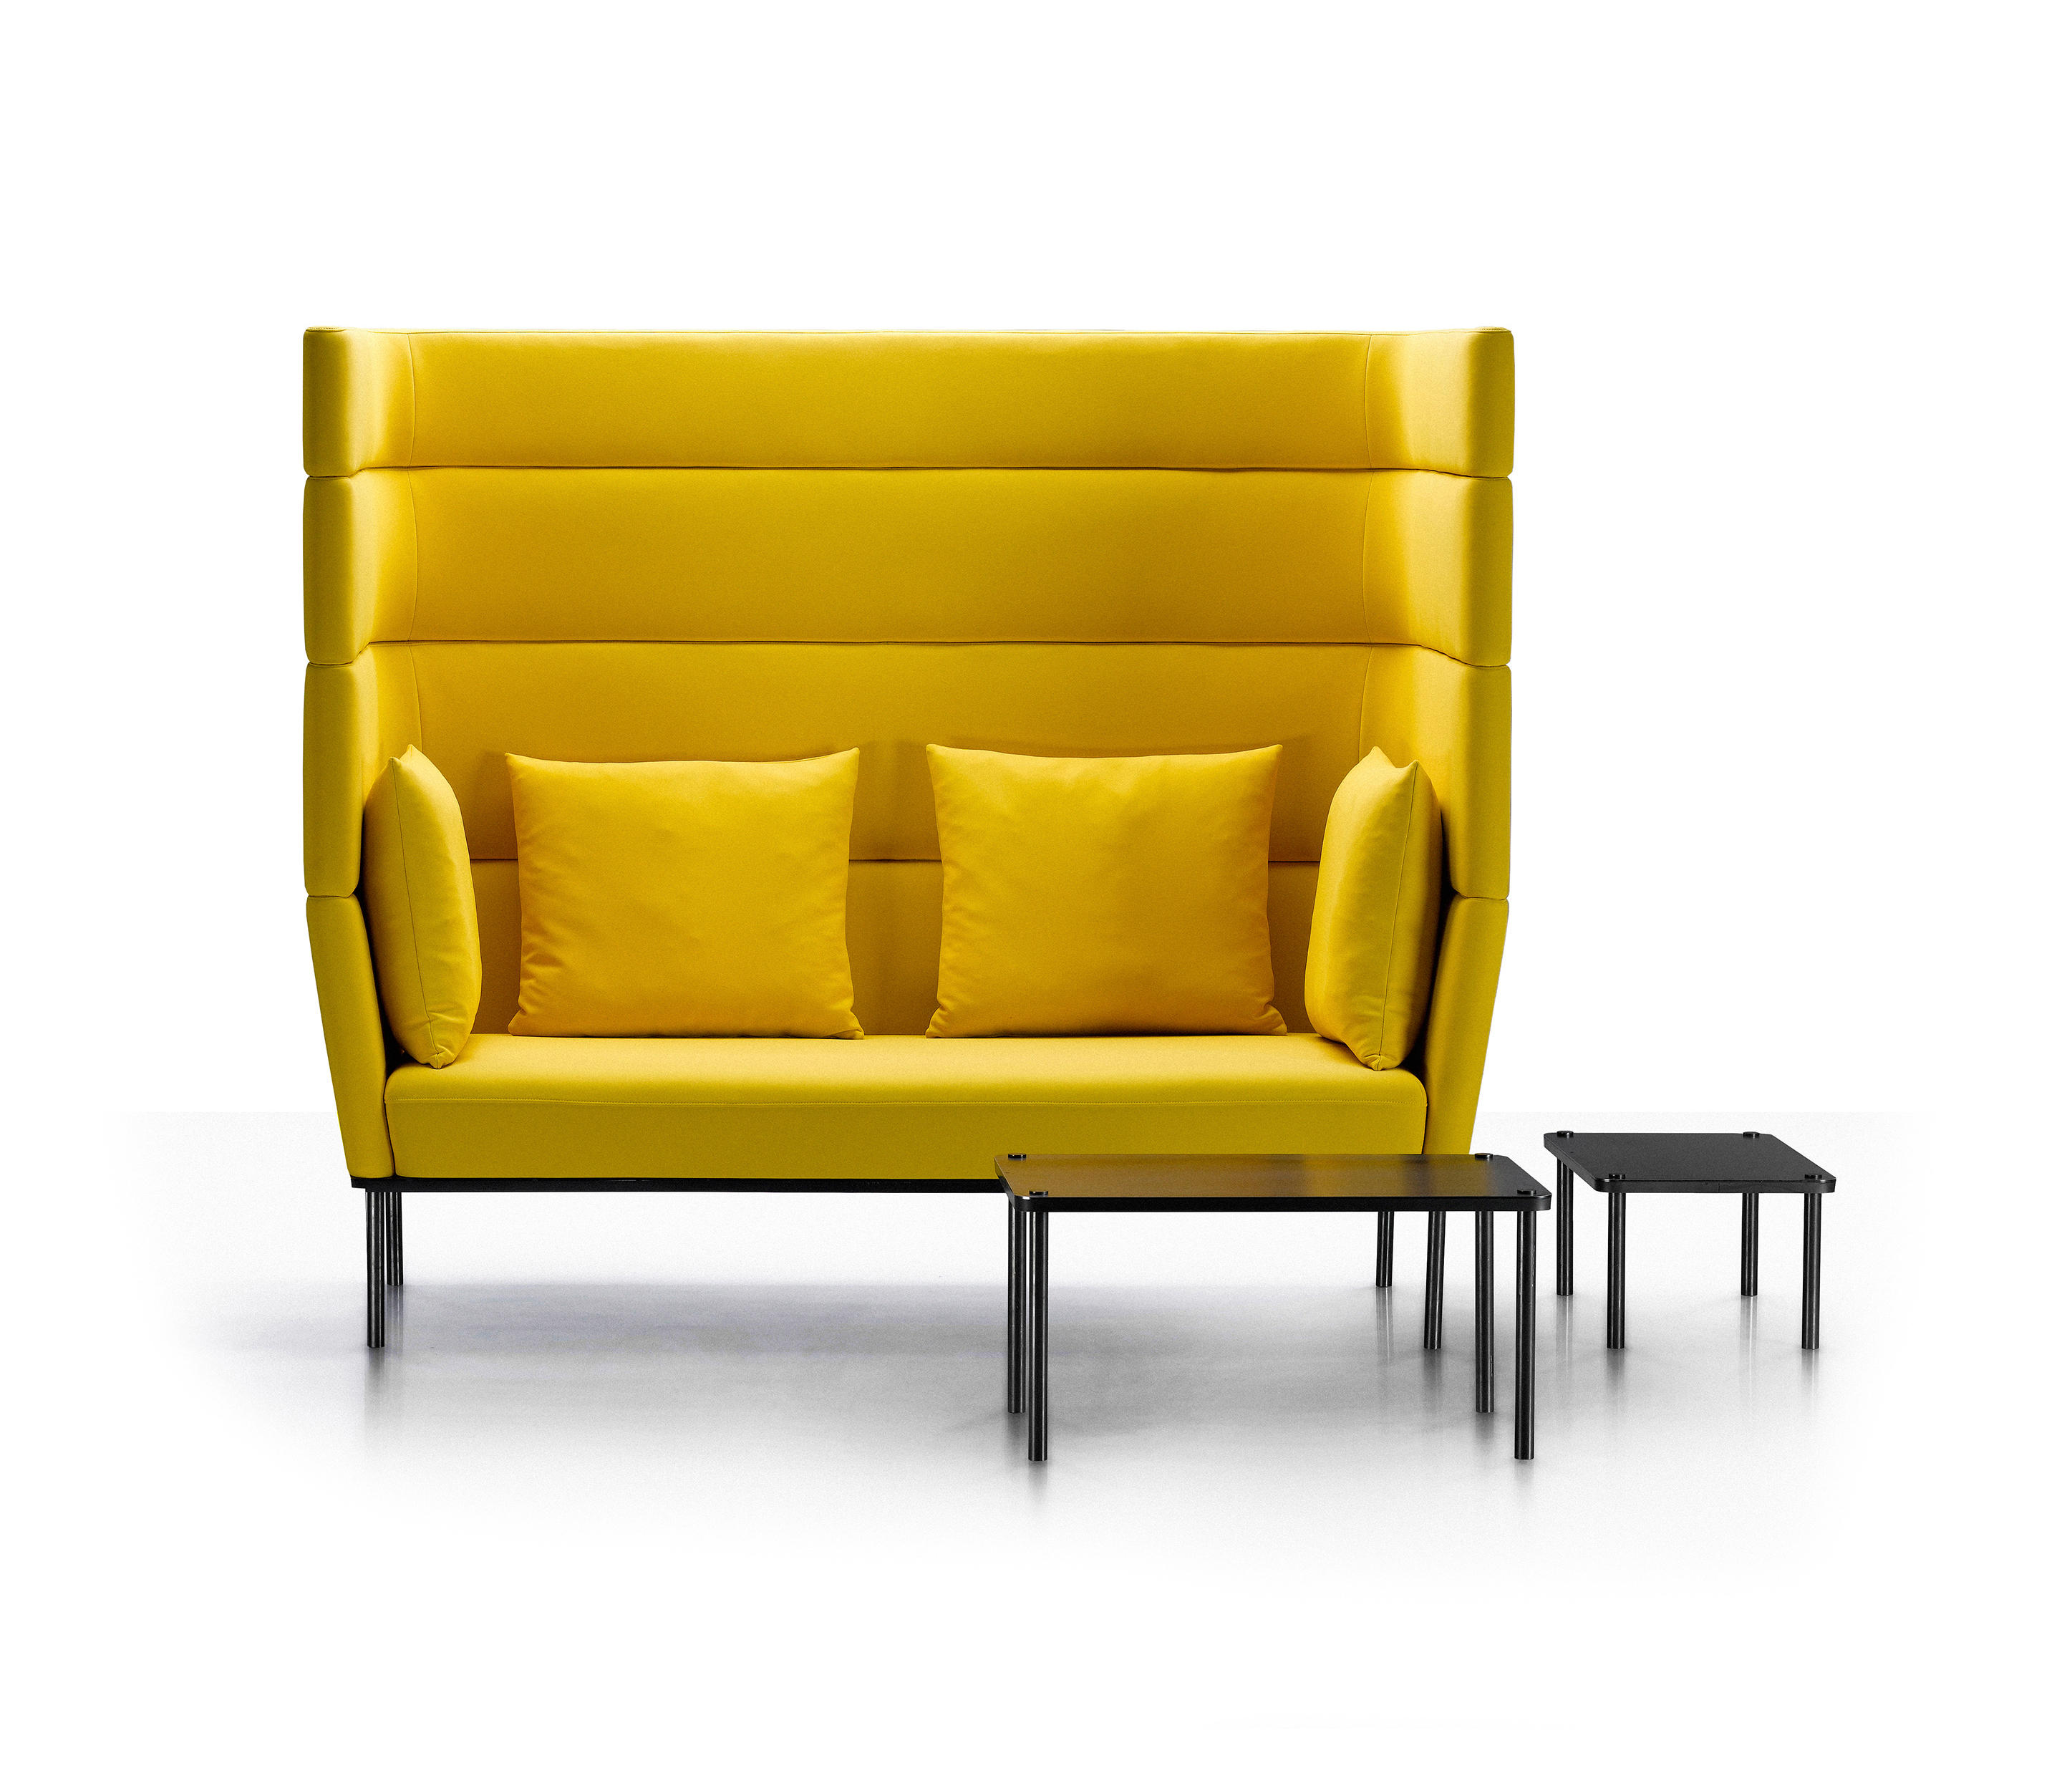 Surprising Element Lounge Seating Designermobel Architonic Ocoug Best Dining Table And Chair Ideas Images Ocougorg